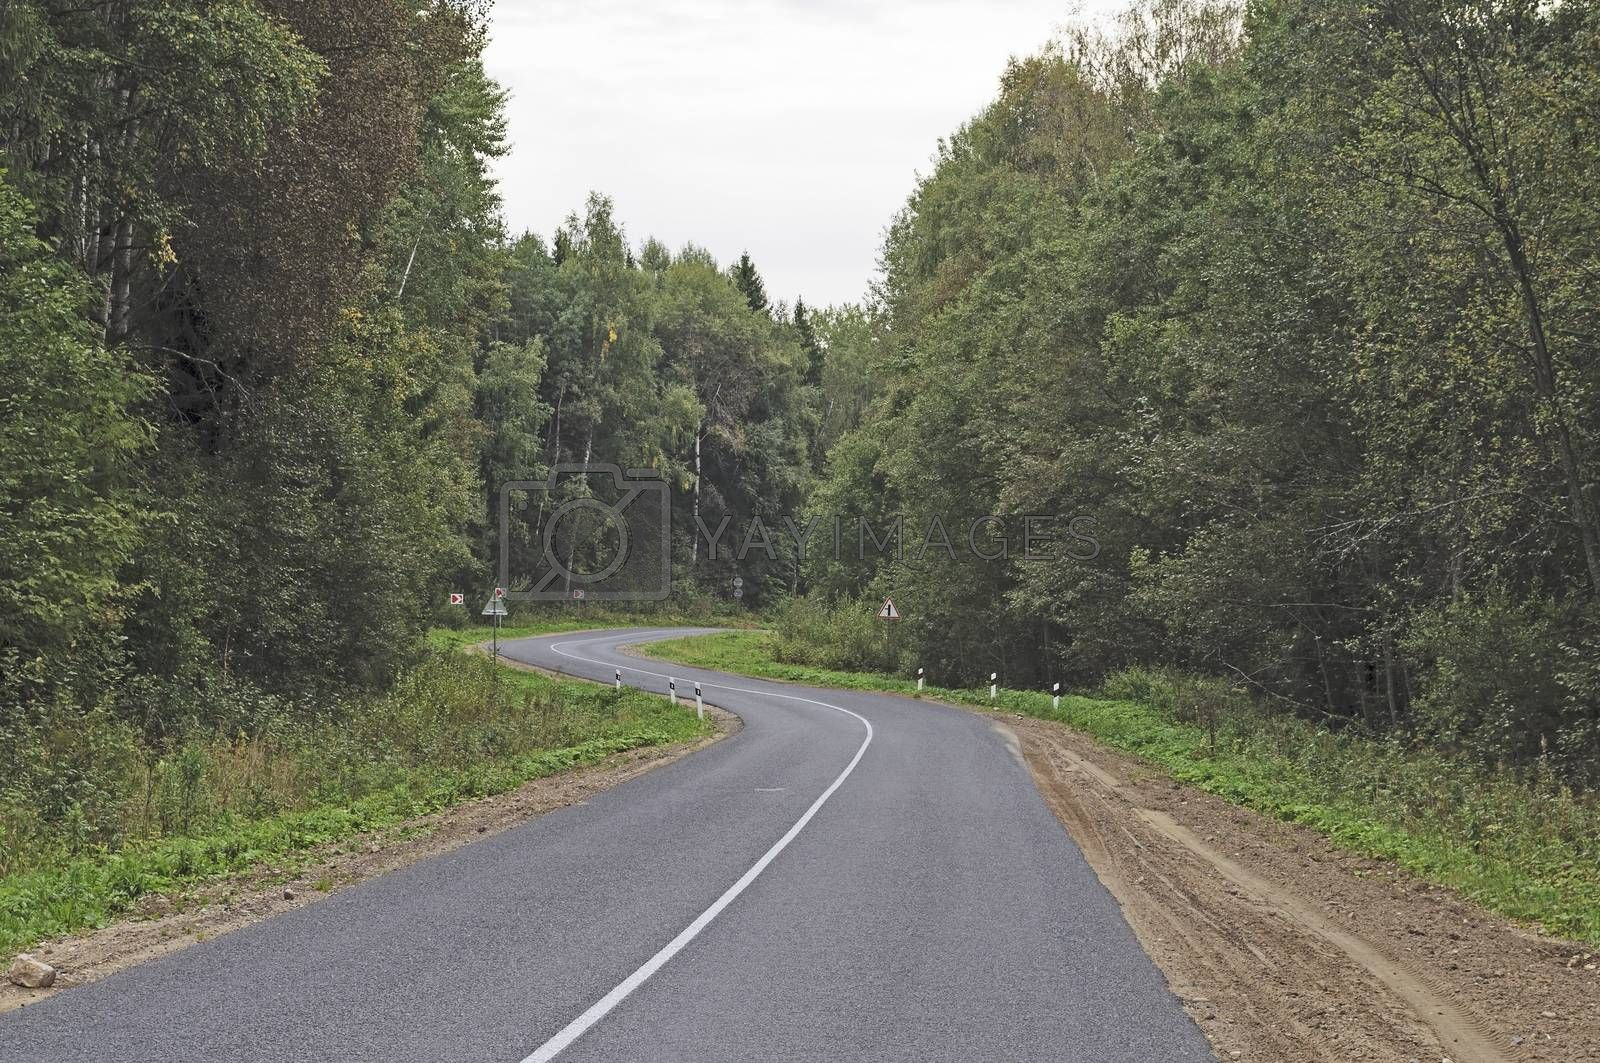 Winding asphalt road in the forest